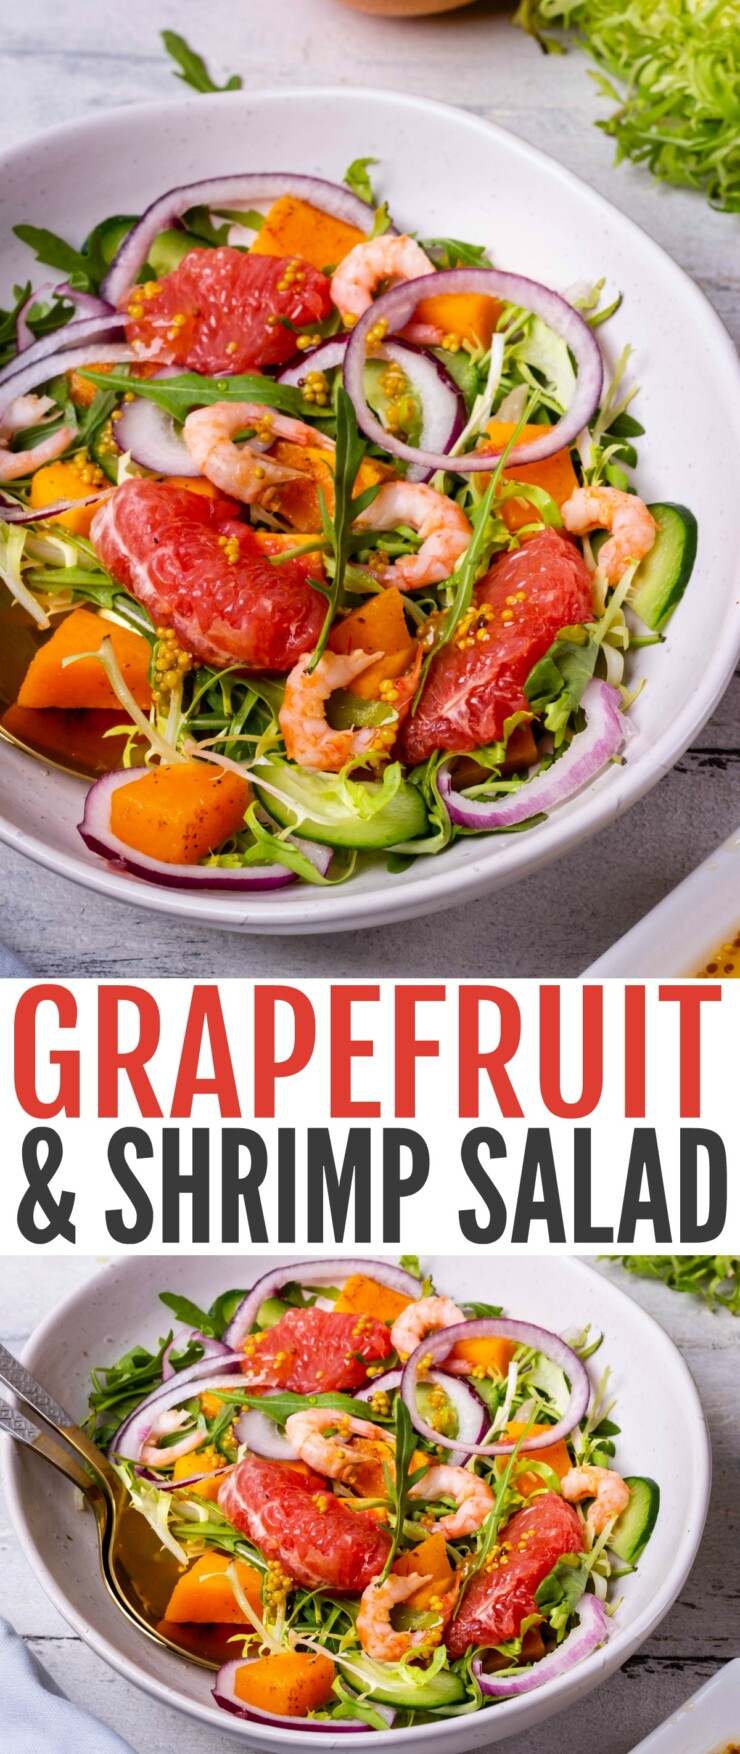 This Grapefruit & Shrimp Salad is just the perfect size for lunch for one but can easily be made for a crowd, simply multiply the ingredients for a delicious salad all will enjoy.